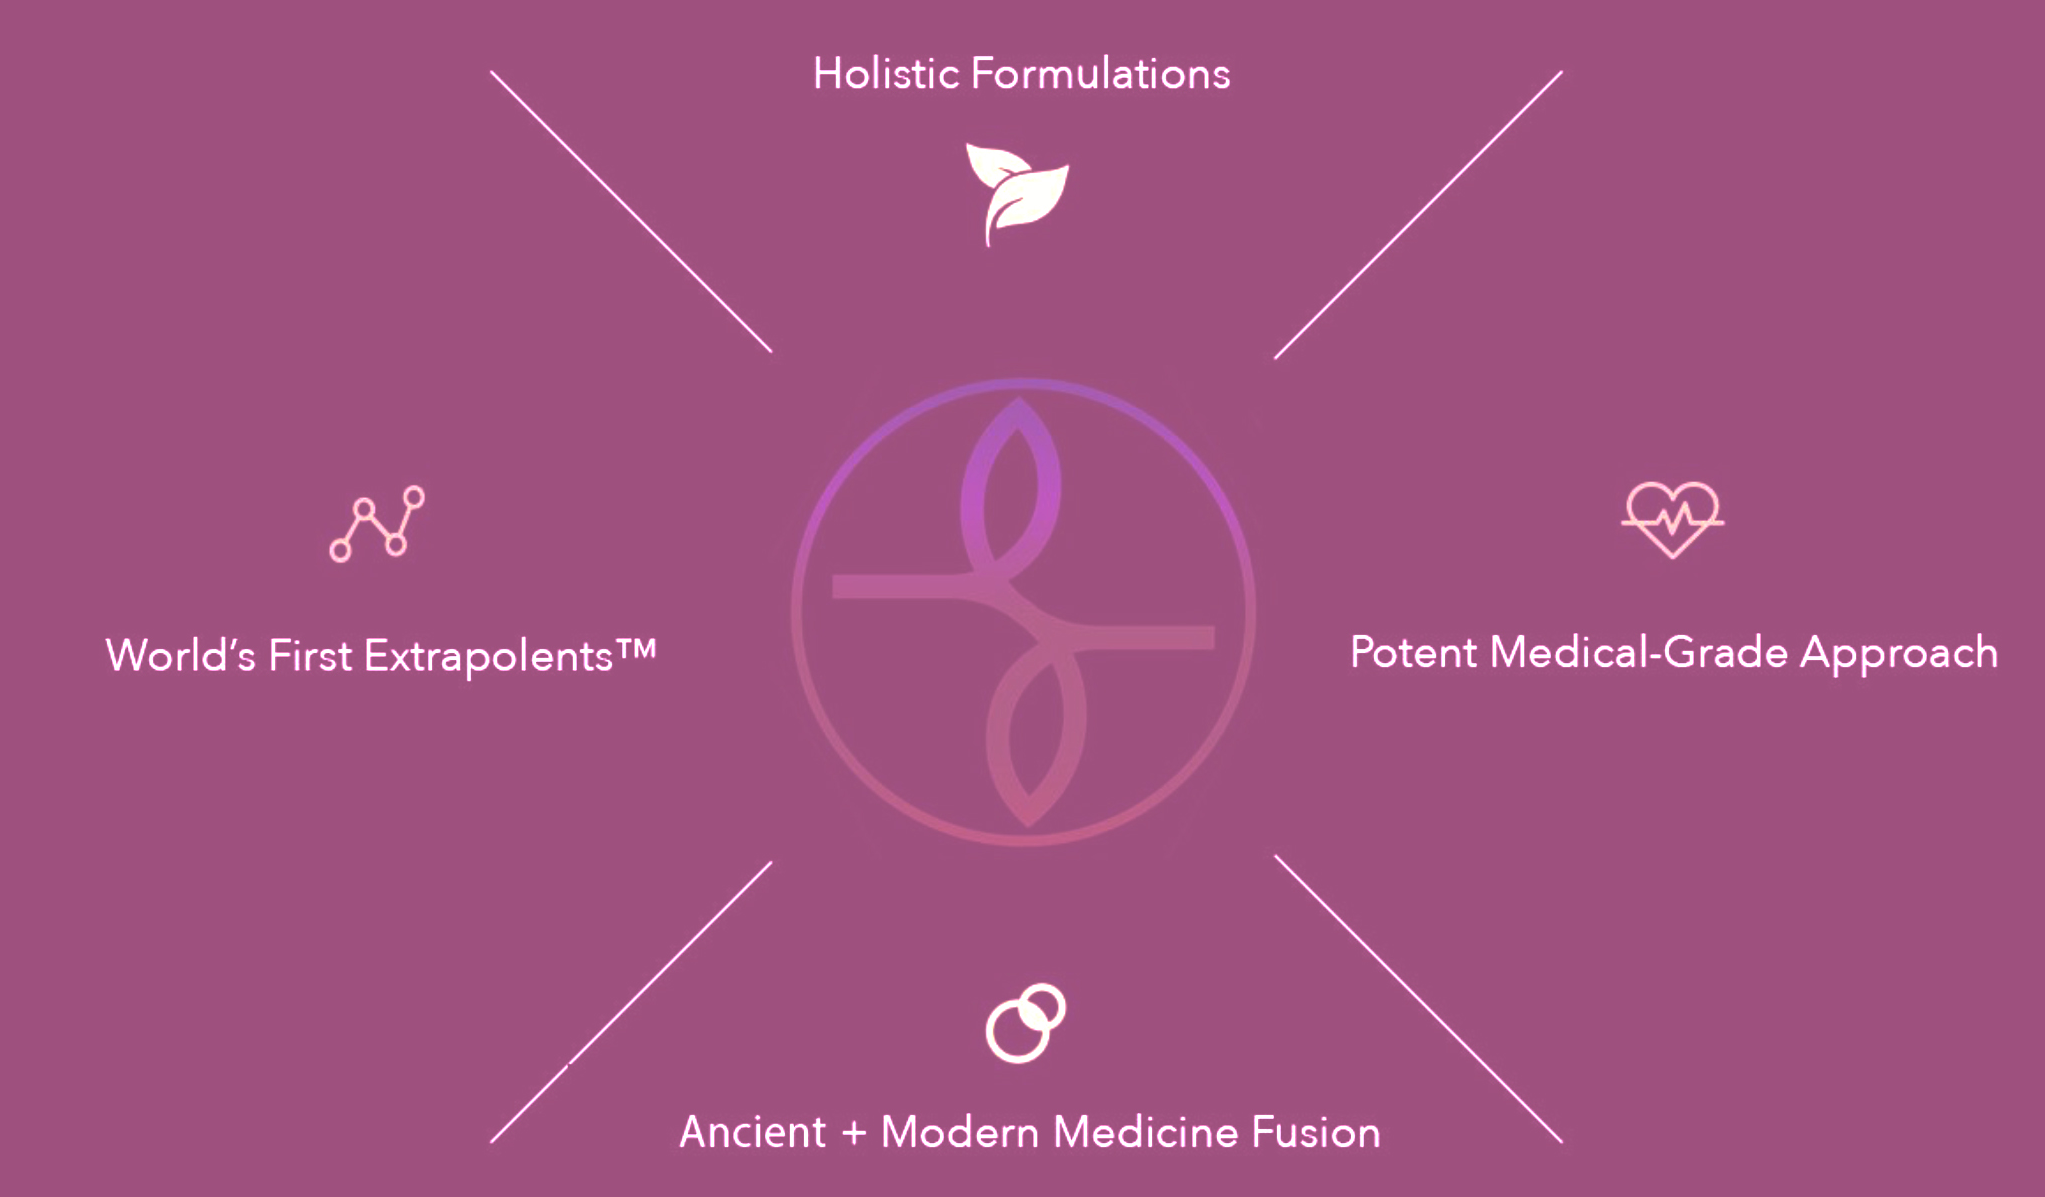 Holistic Formulations, Potent Medical-Grade Approach, Ancient & Modern Medicine Fusion, World's First Extrapolents